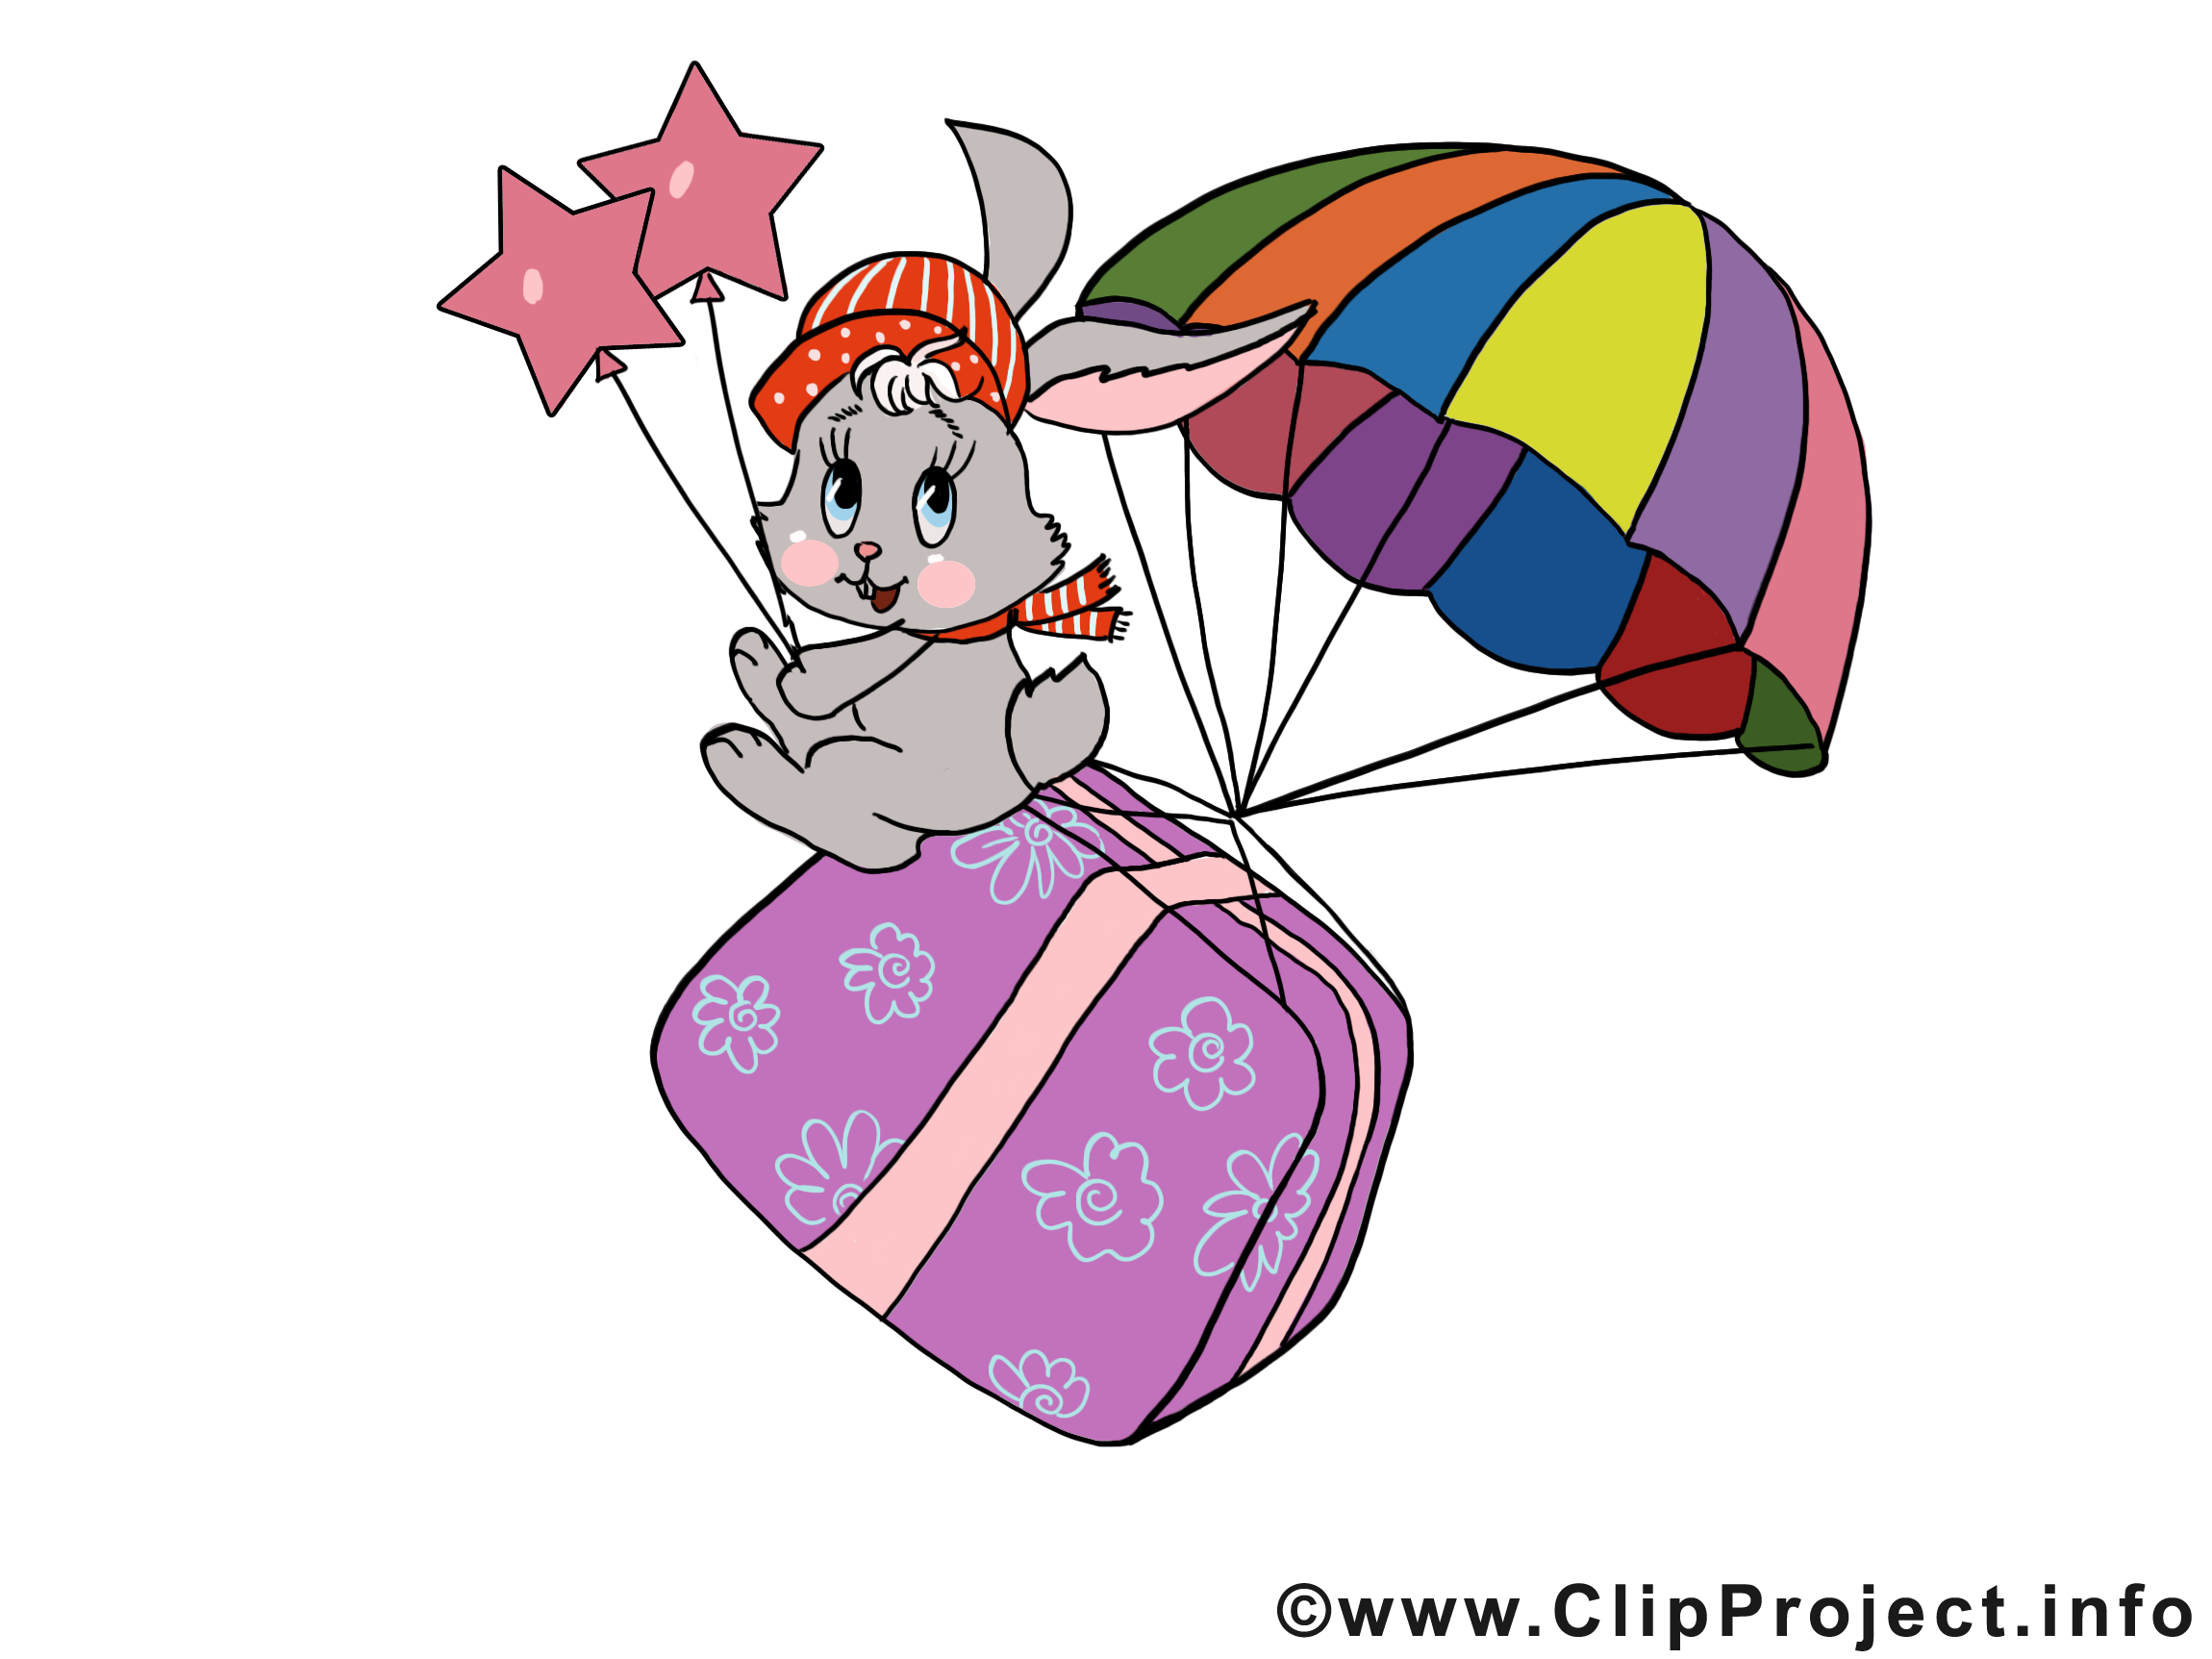 Cadeau illustration gratuite – Carnaval clipart